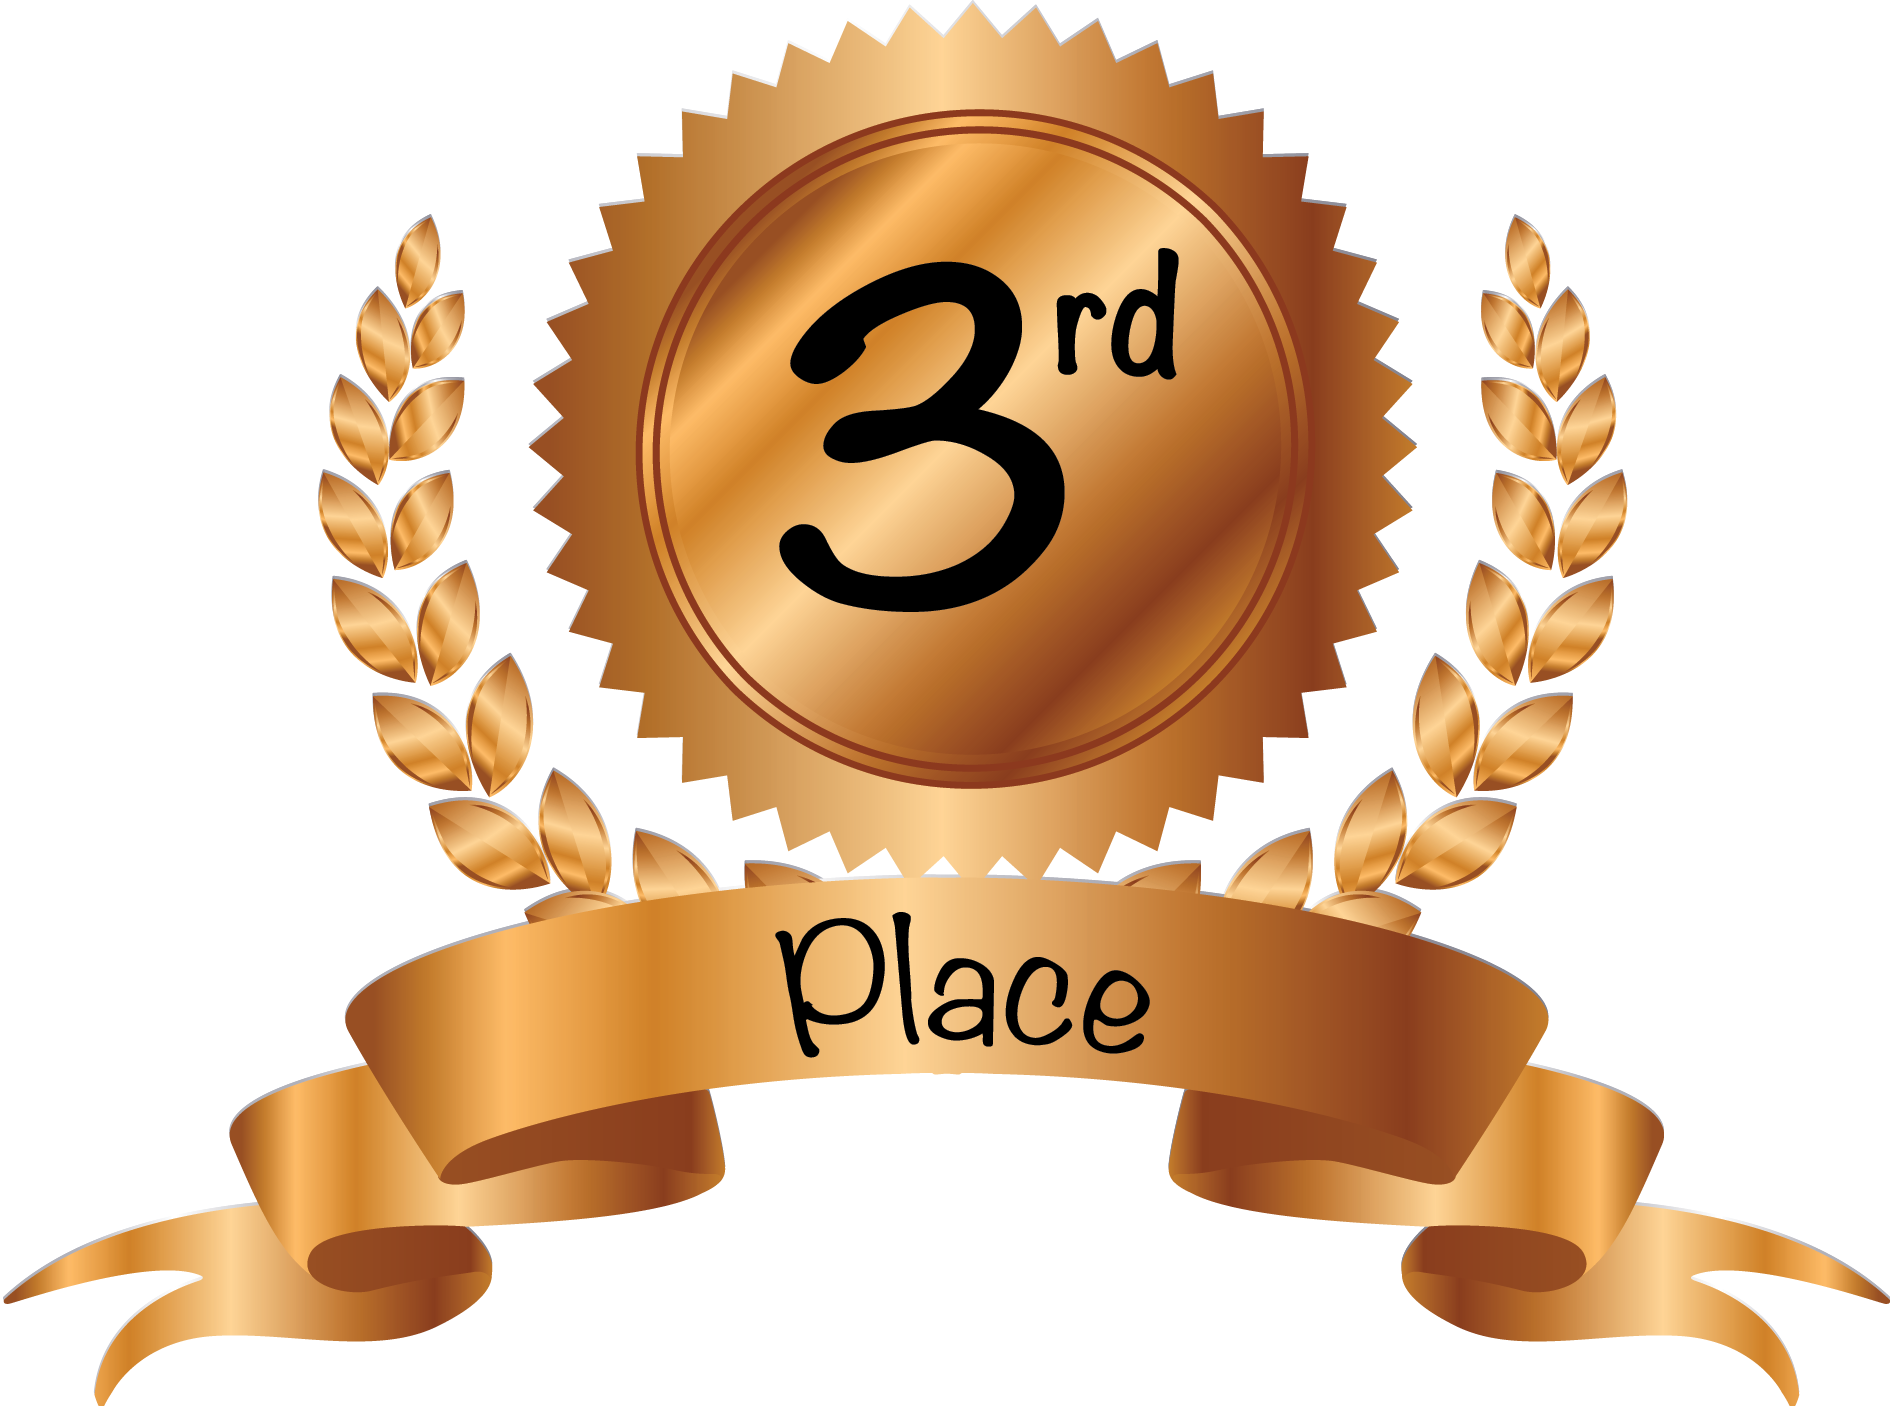 3rd Place Trophy Clipart.